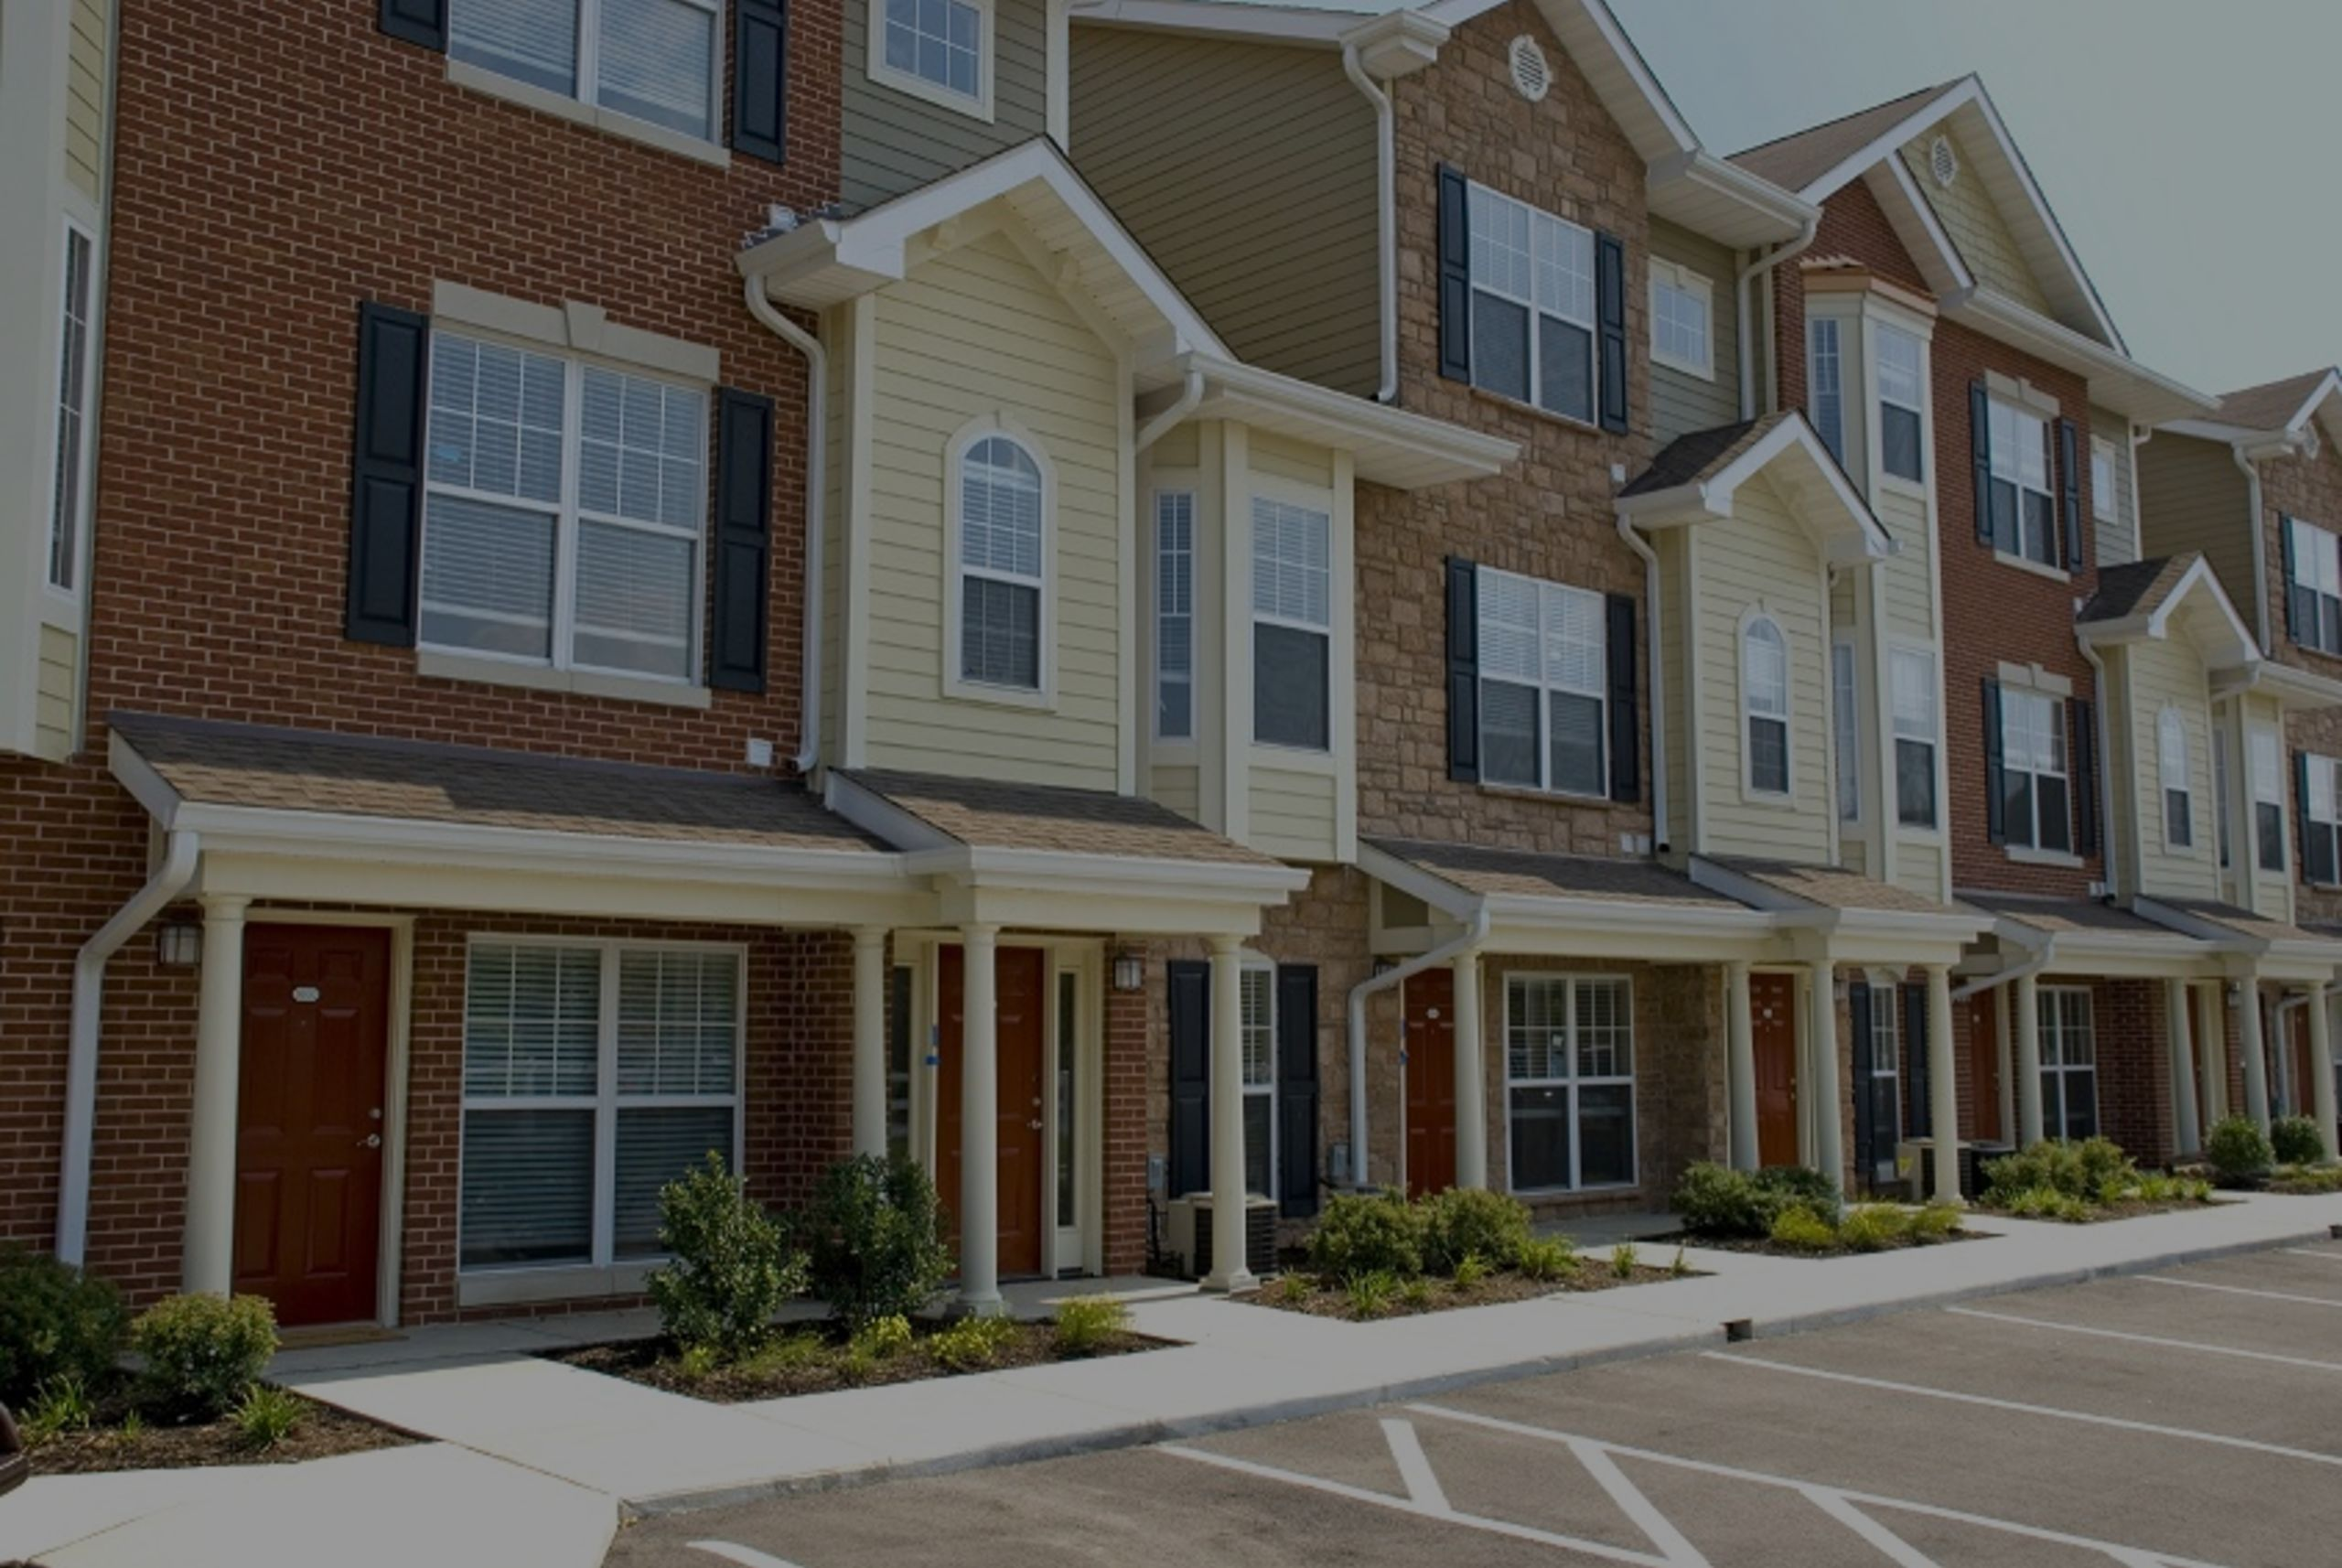 Condo vs. Townhouse – What's the Difference?